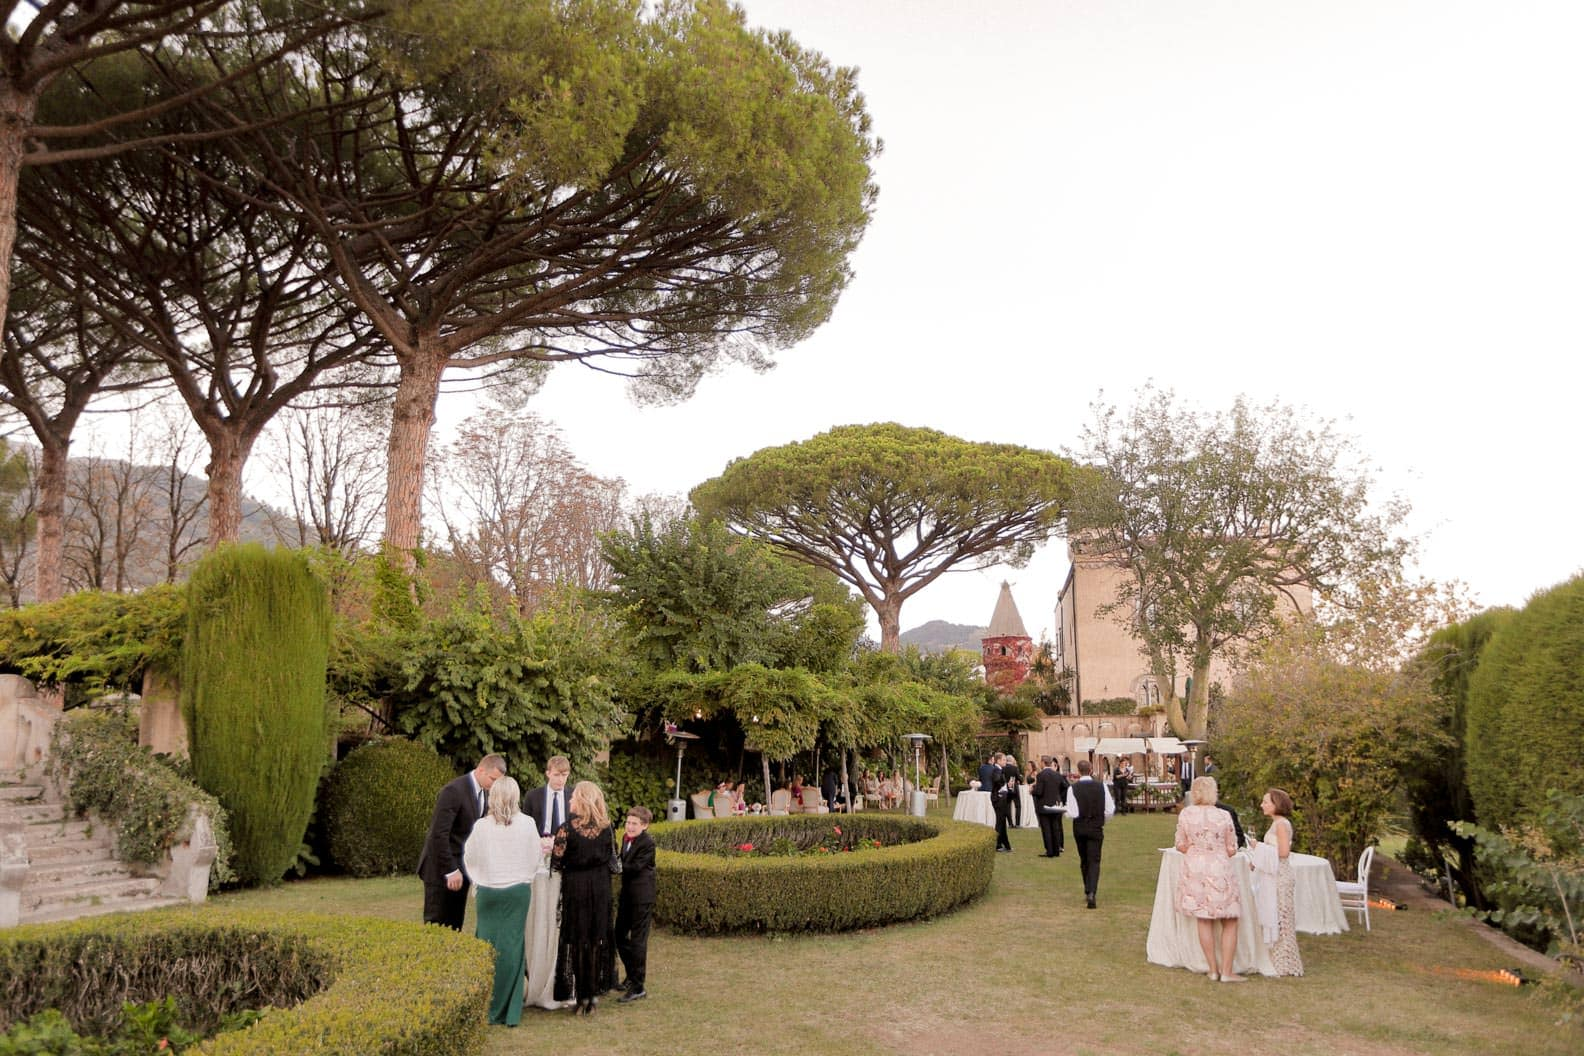 the garden of villa cimbrone during the cocktail hour